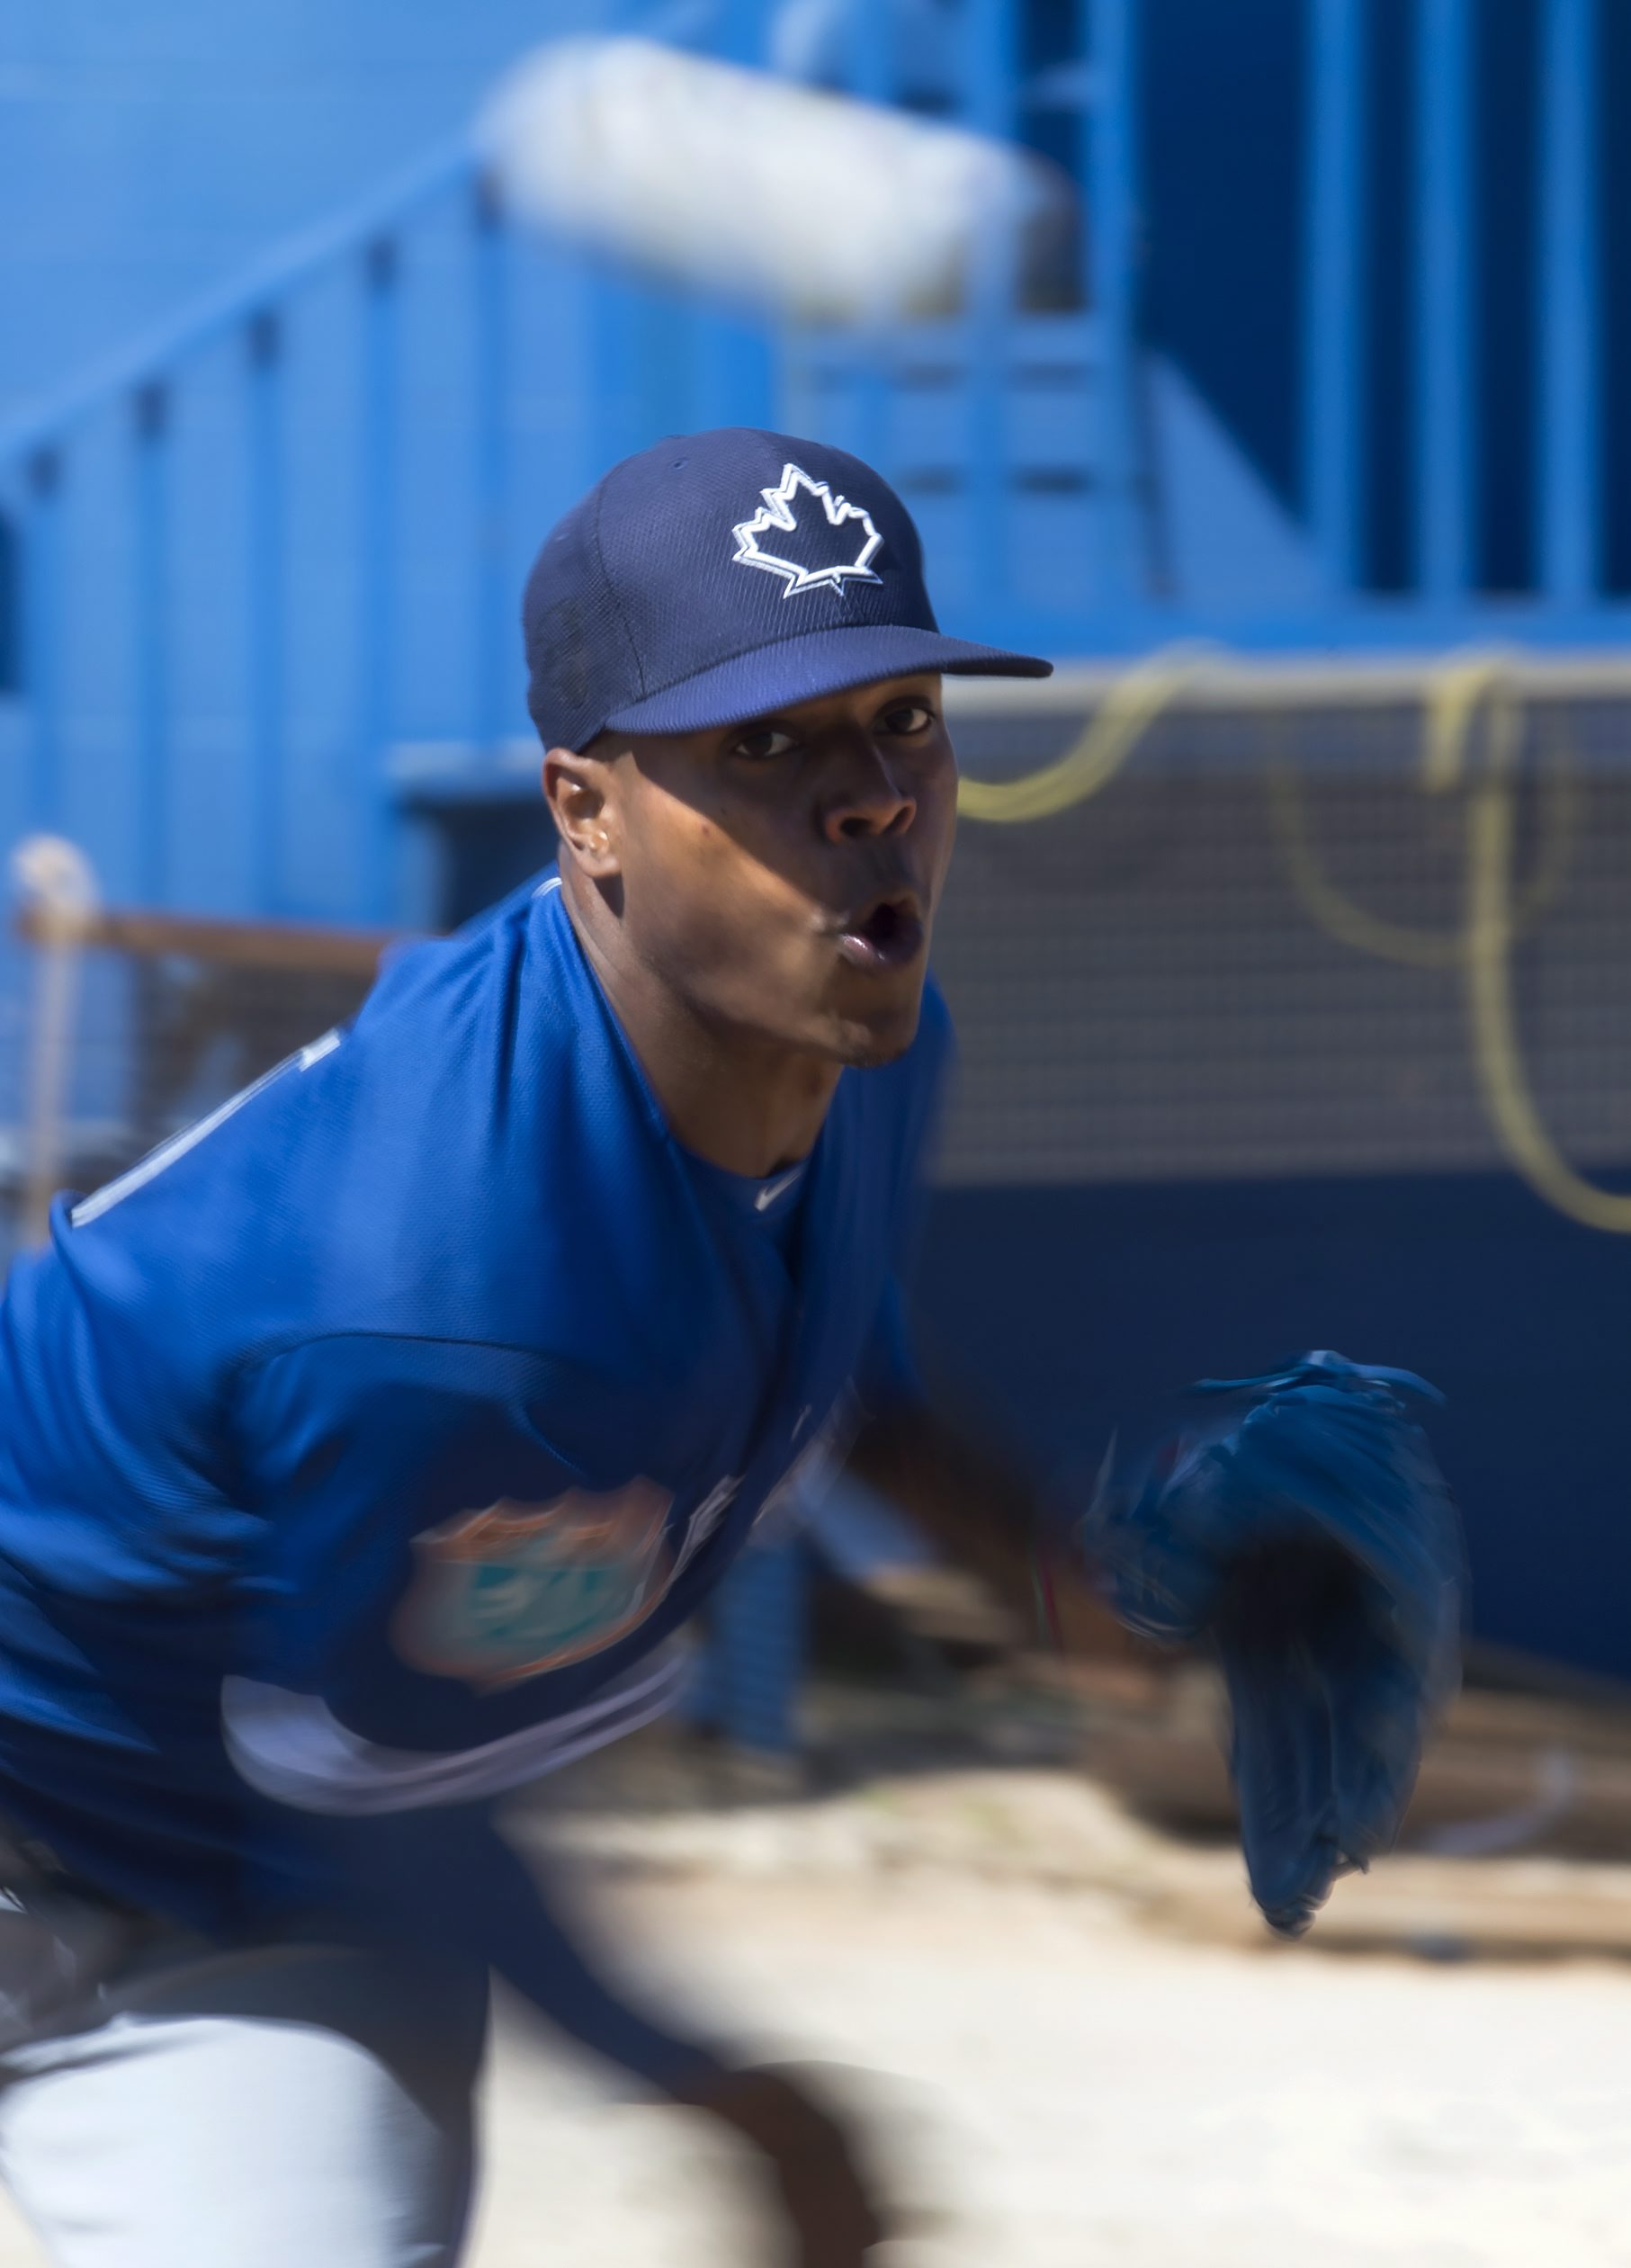 Toronto Blue Jays pitcher Marcus Stroman throws during a spring training baseball workout in Dunedin, Fla., Friday, Feb. 26, 2016. (Frank Gunn/The Canadian Press via AP) MANDATORY CREDIT